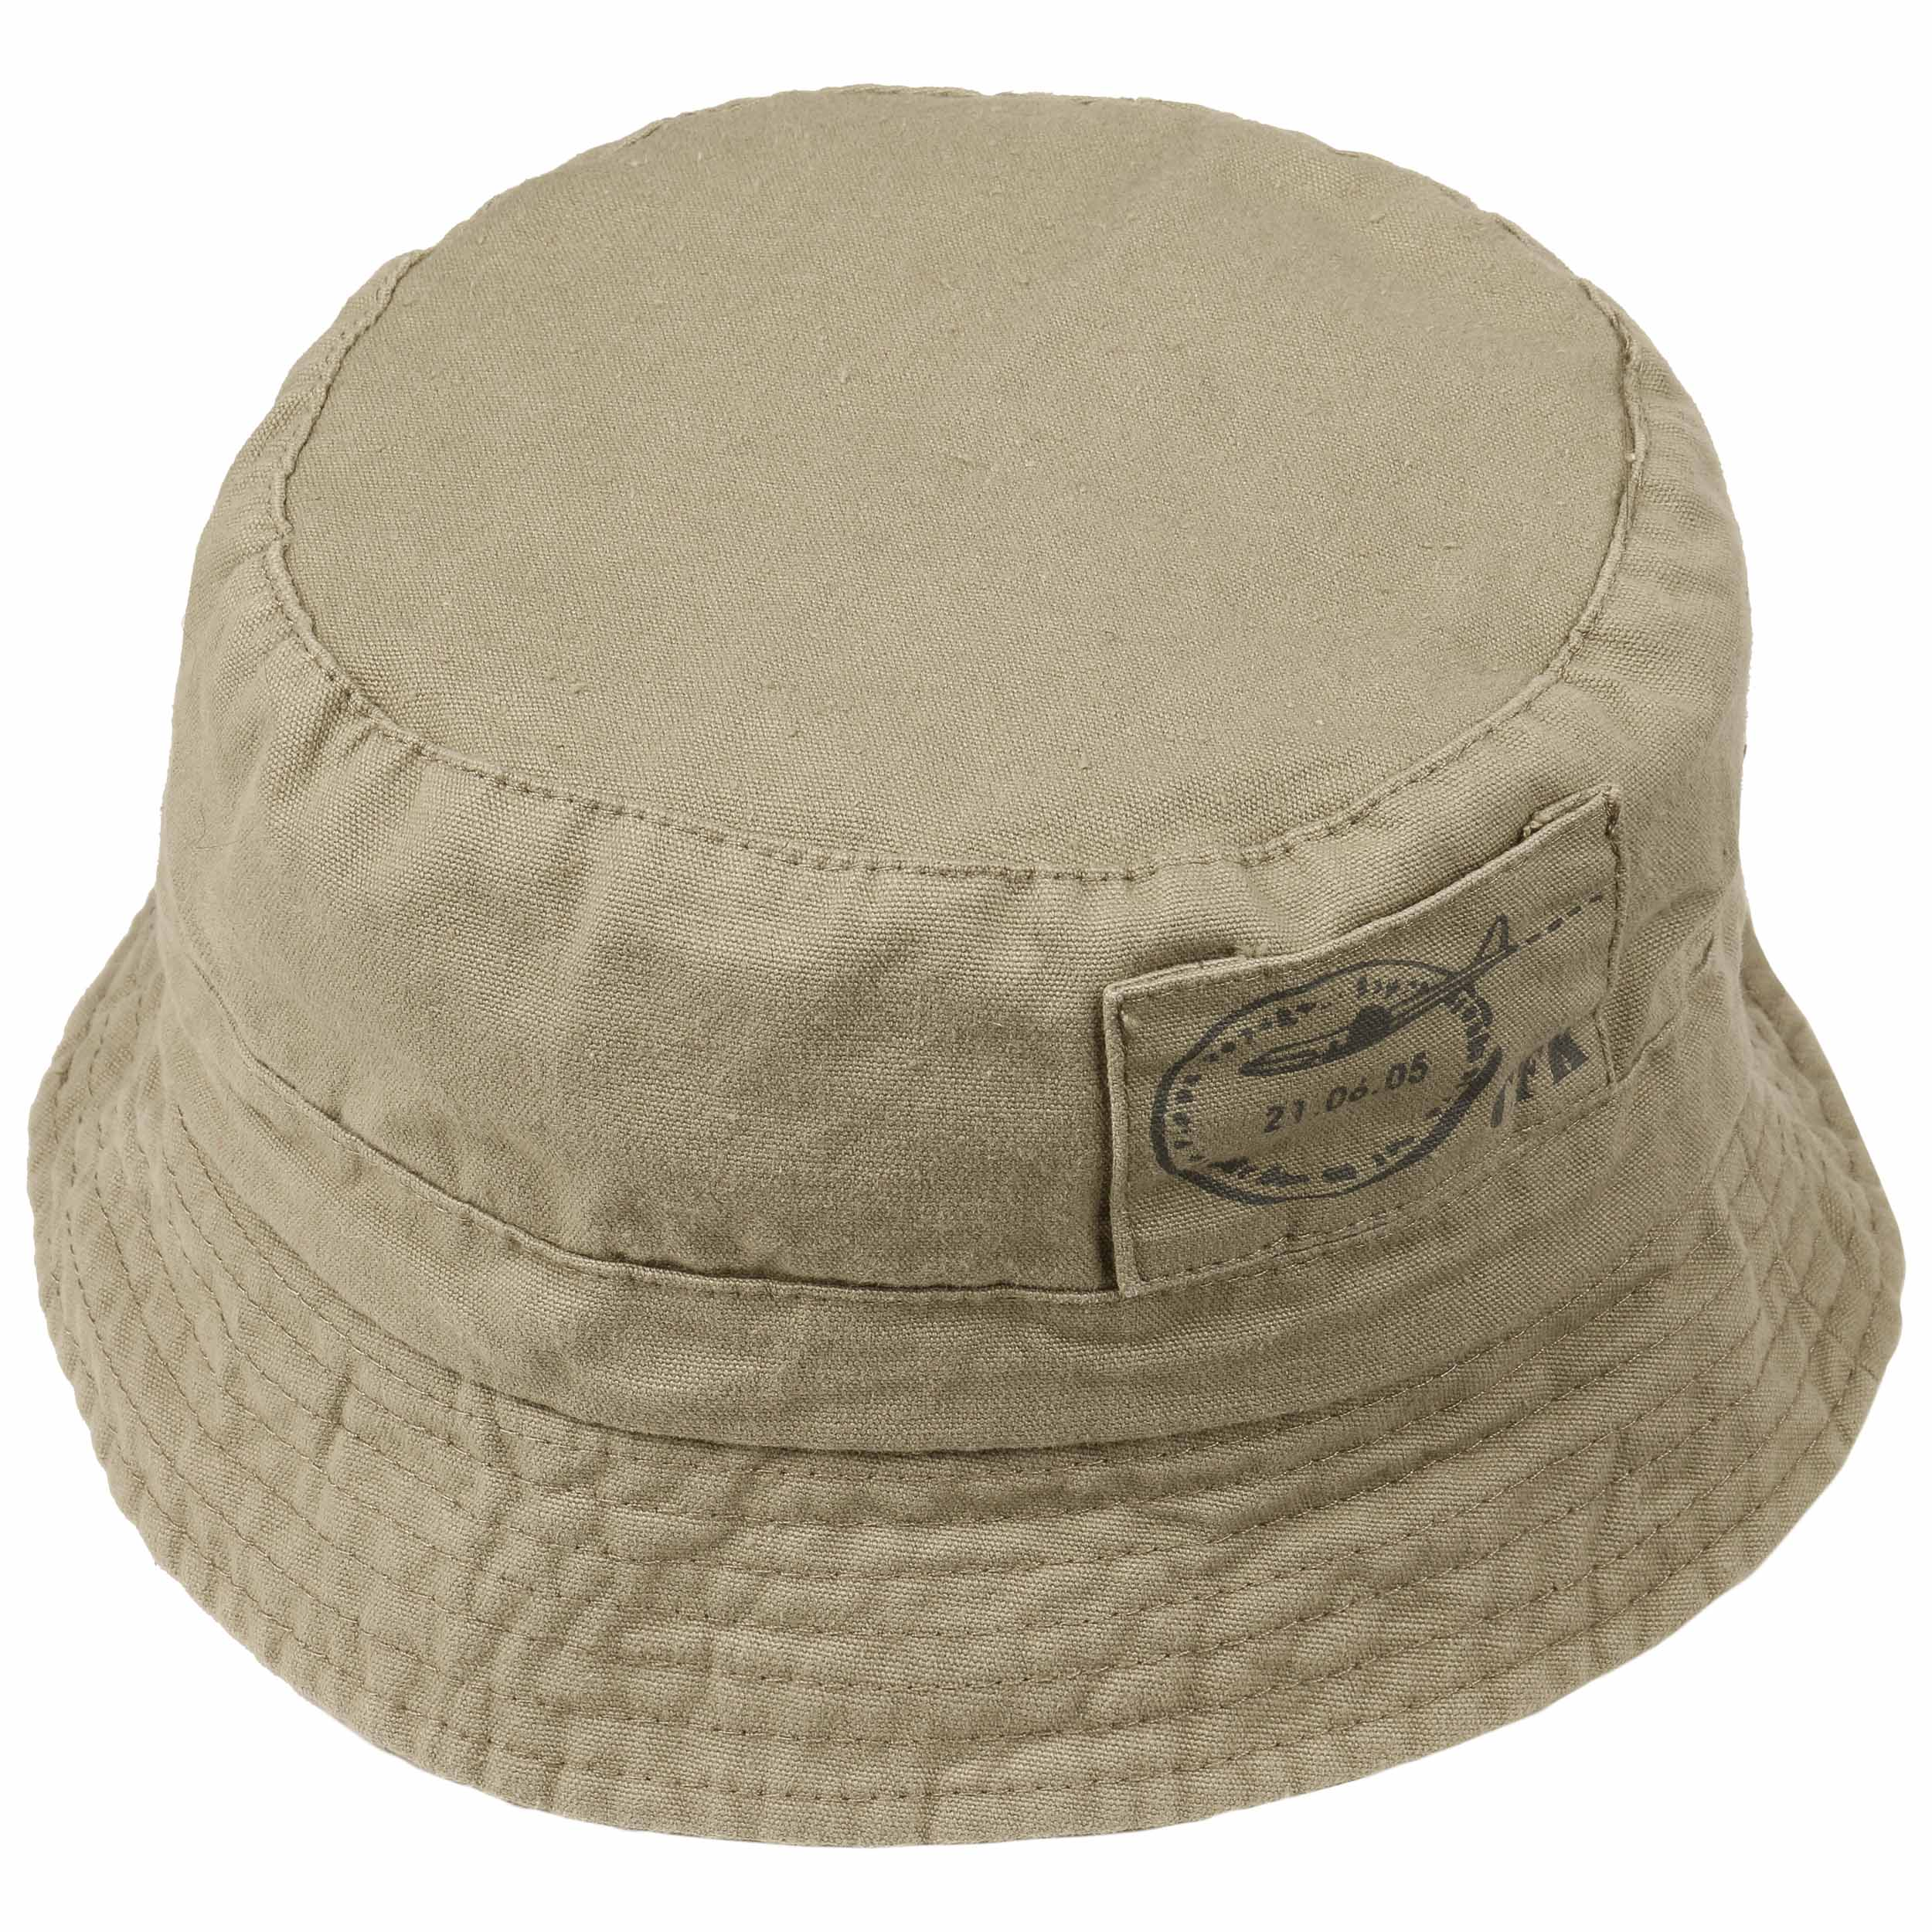 ... Kids Cotton Bucket Hat - beige 1 ... 534aeccb7bd